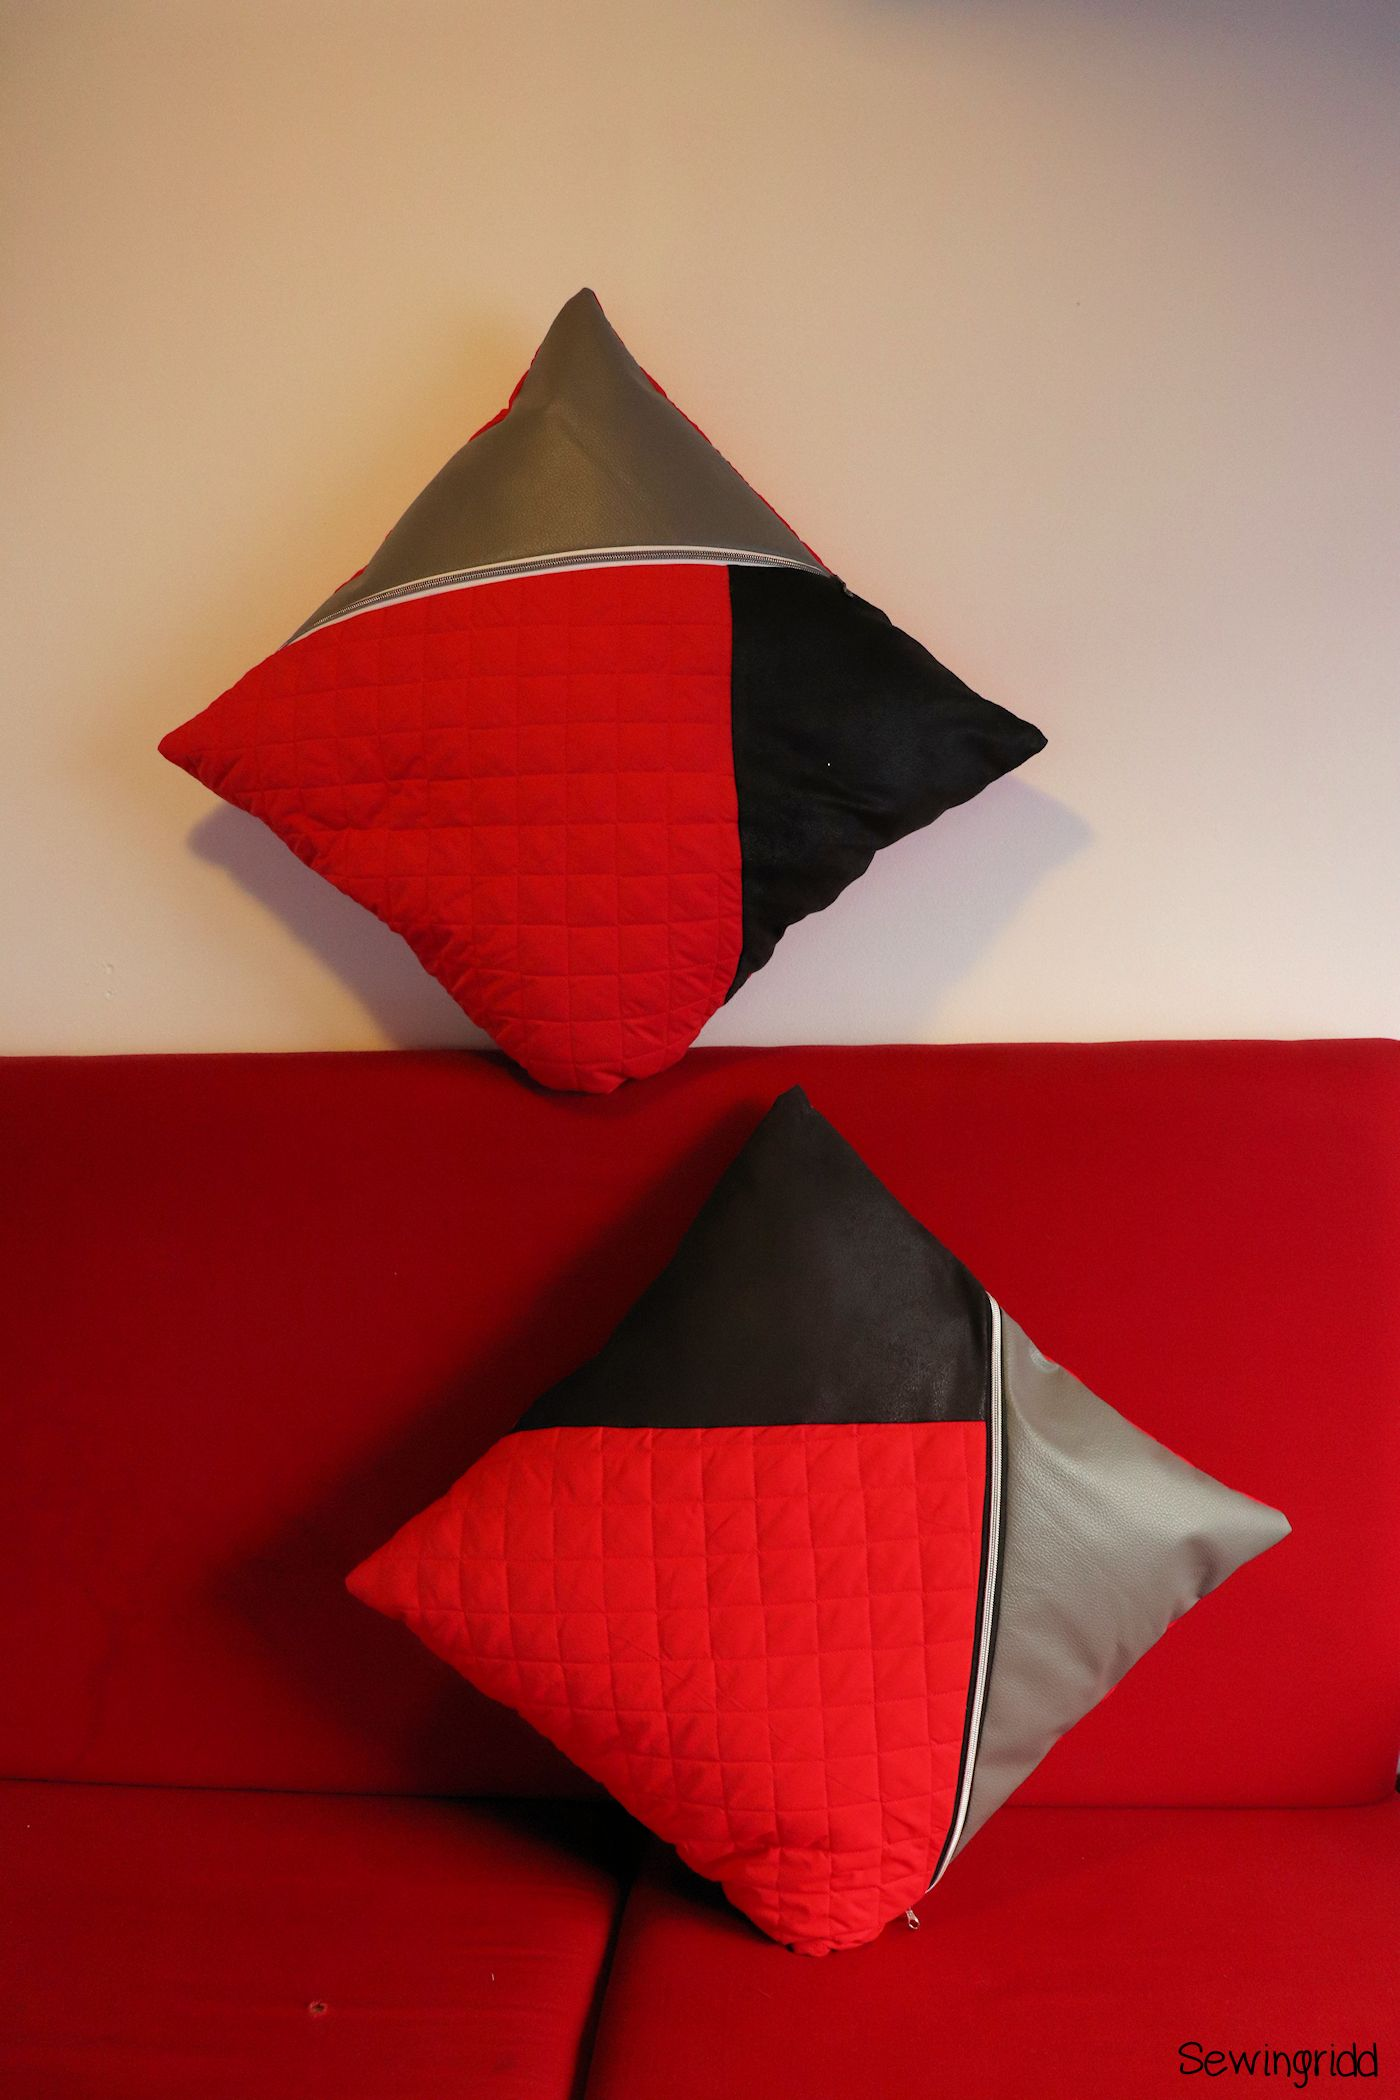 Pillow cases designed and sewn by Sewingridd